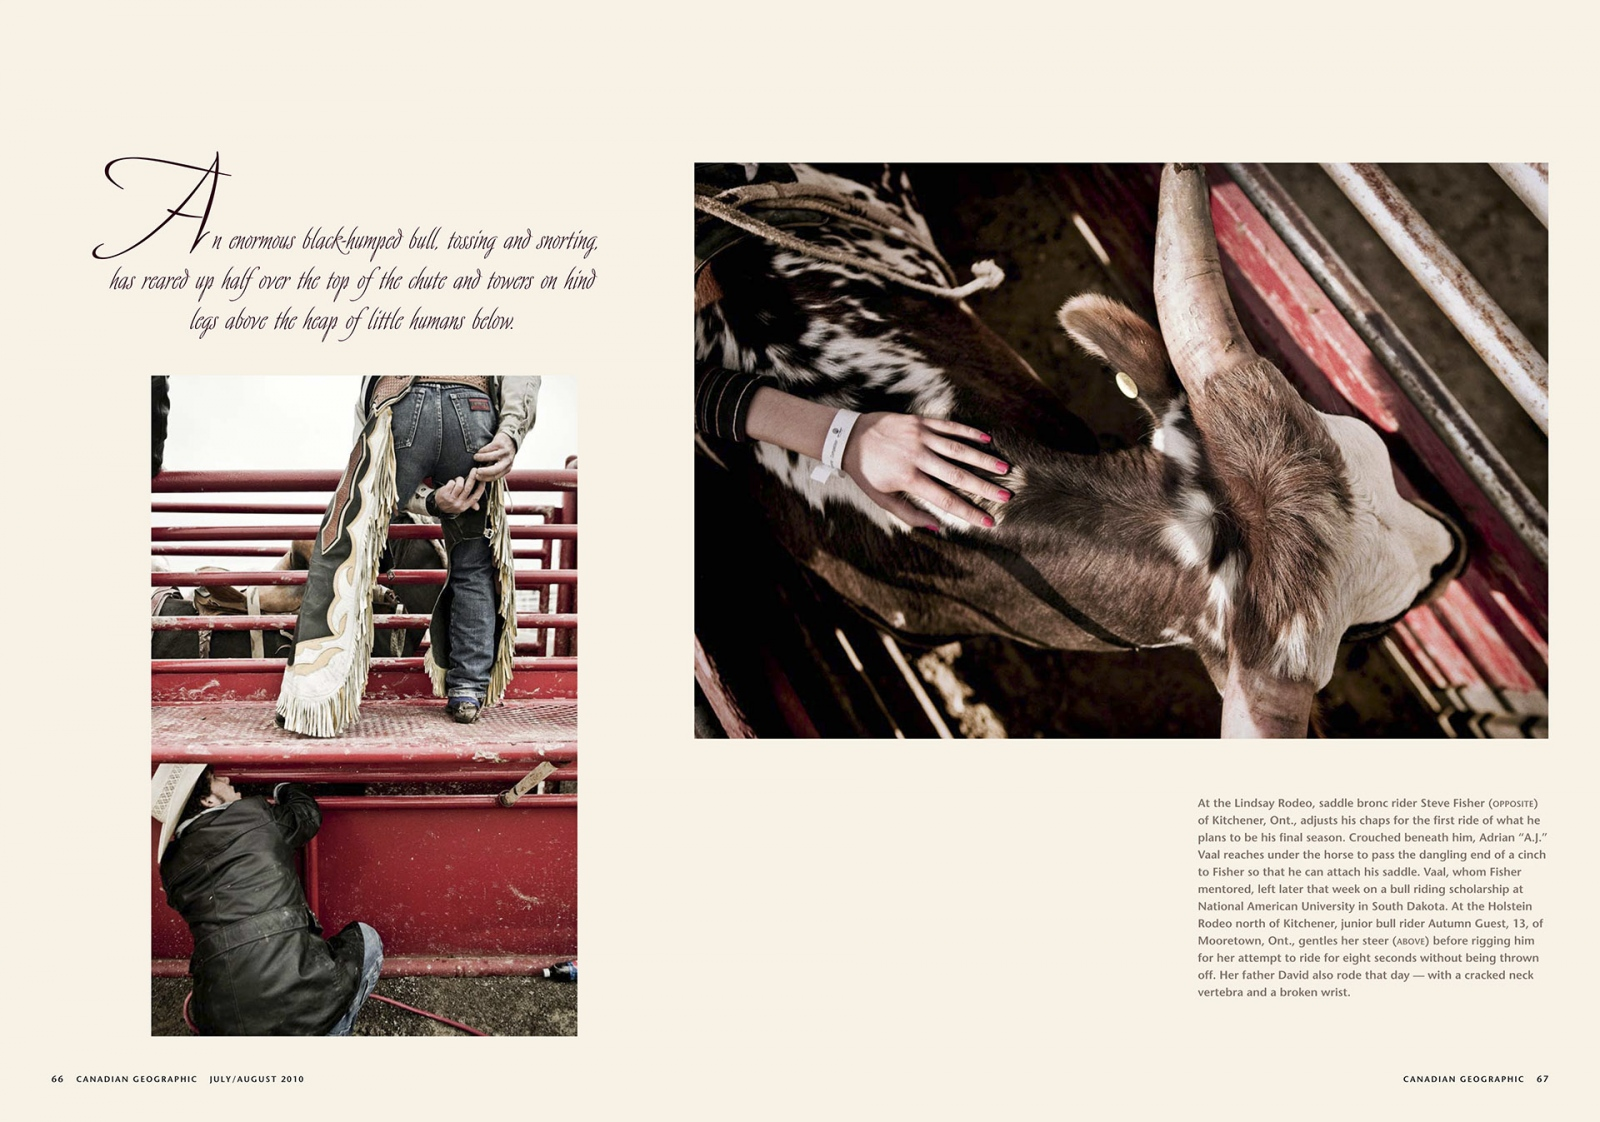 Art and Documentary Photography - Loading 008_CanGeoSemiFinalLayout-Rodeo-4.jpg